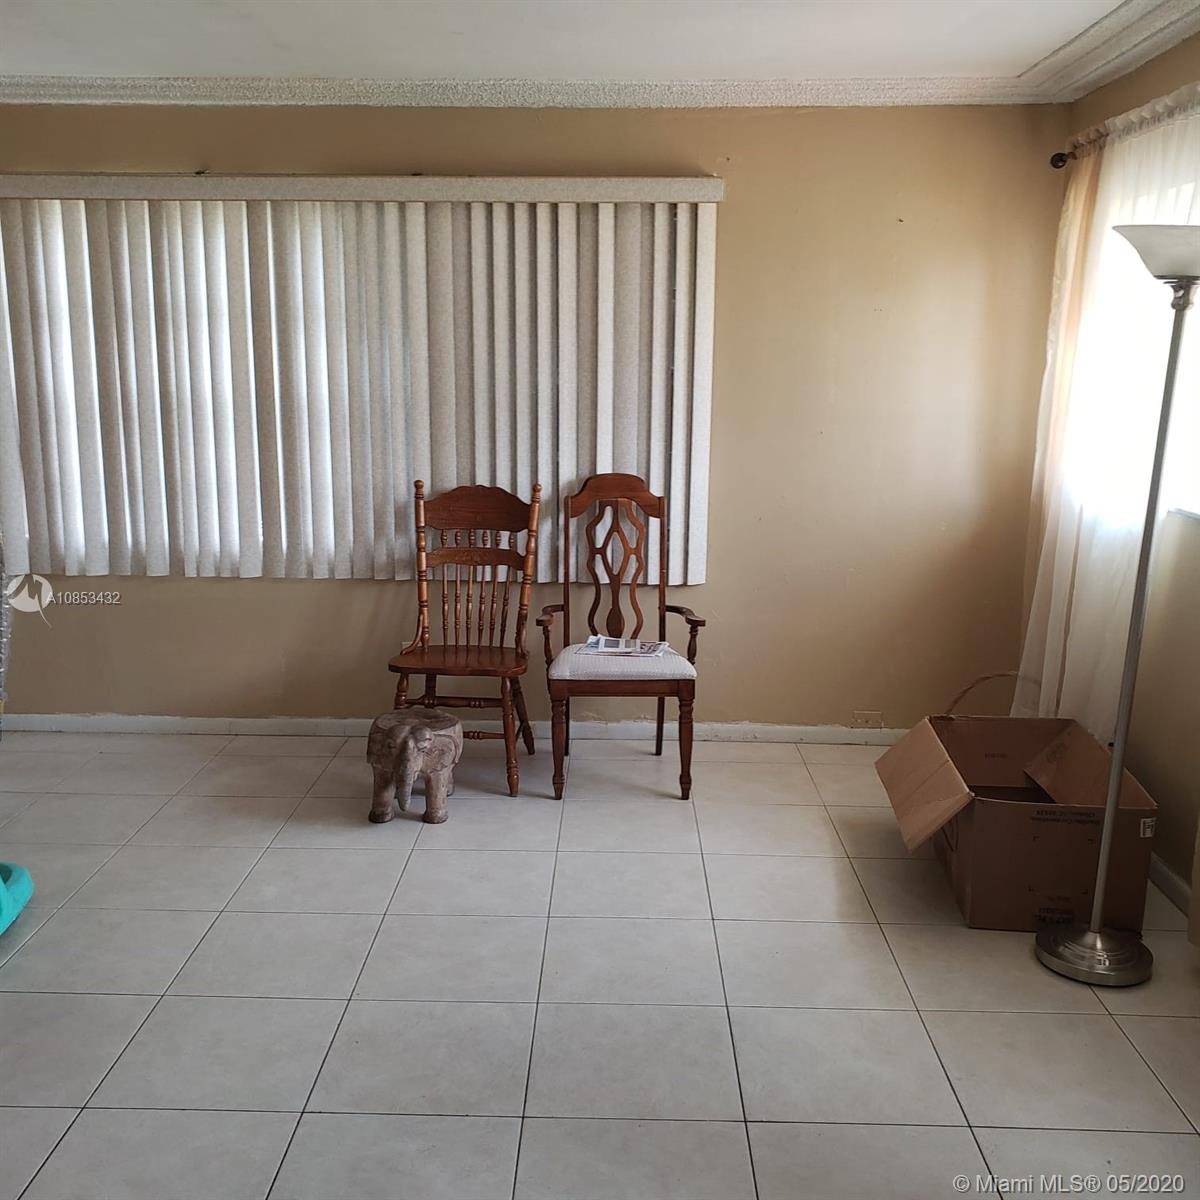 2826 NW 9th Pl, Fort Lauderdale, Florida 33311, 3 Bedrooms Bedrooms, ,2 BathroomsBathrooms,Residential,For Sale,2826 NW 9th Pl,A10853432